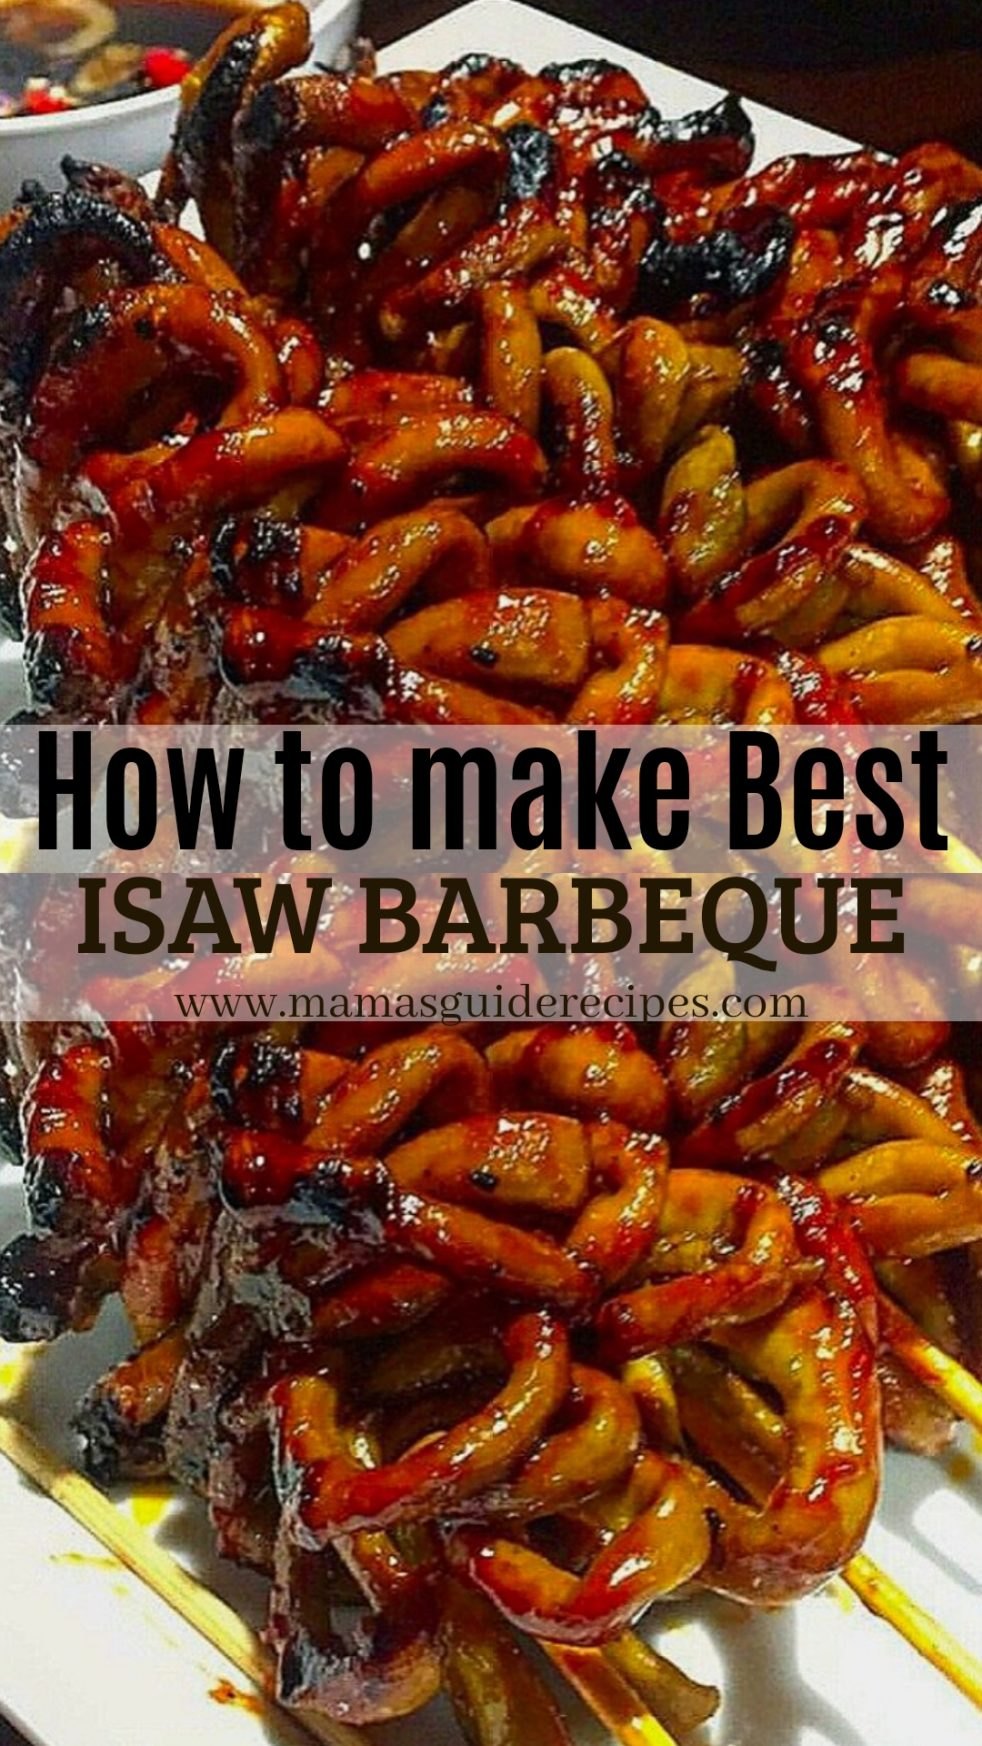 HOW TO MAKE BEST ISAW BBQ